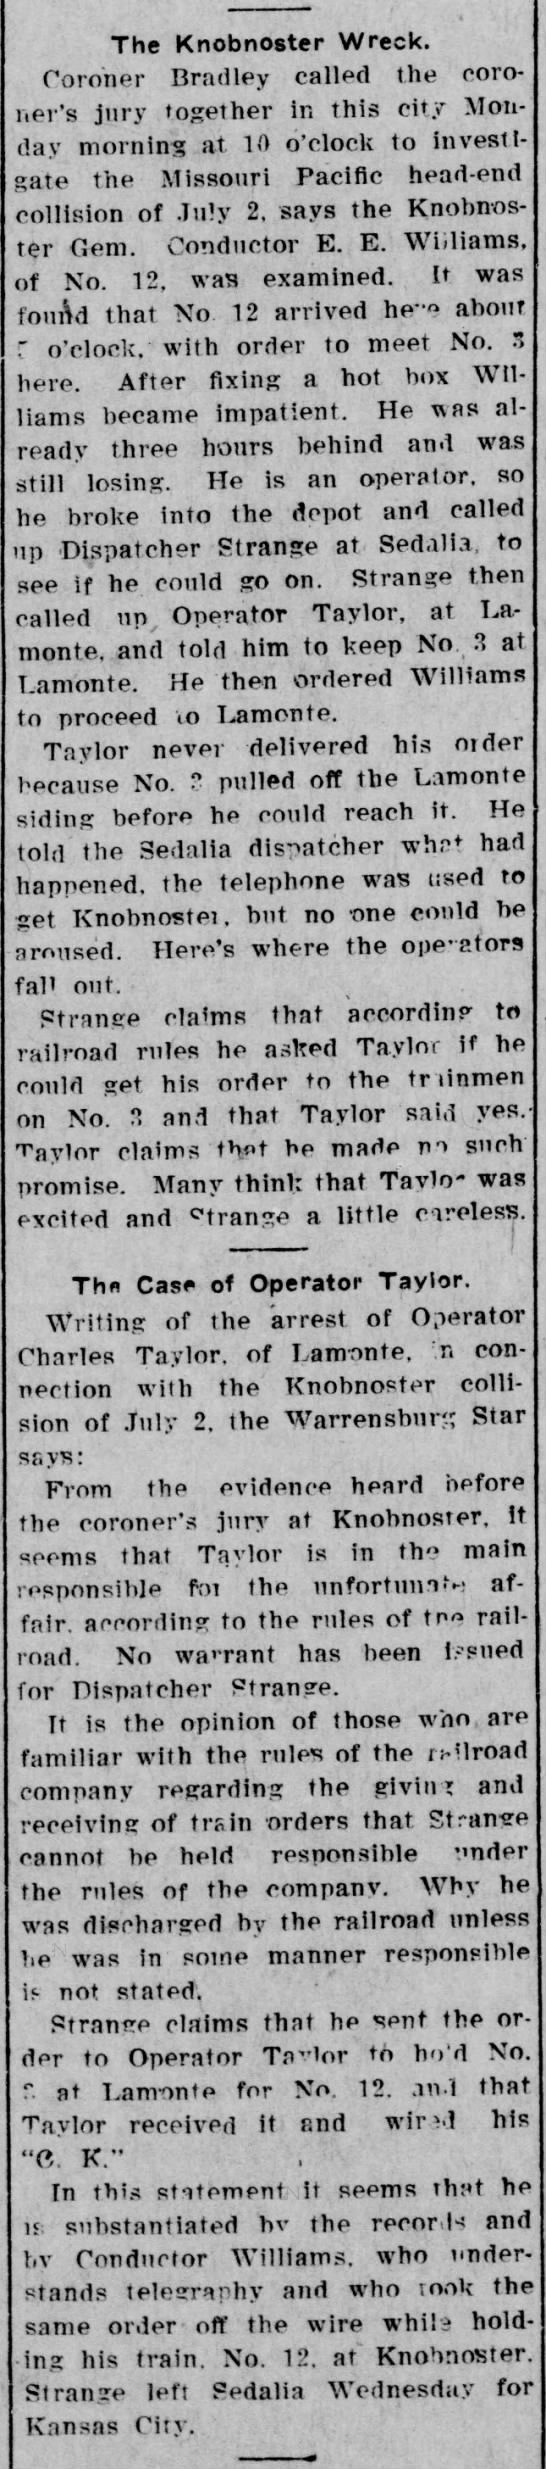 1908 The Knobnoster Train Wreck   Sedalia Democrat 10 July - The Knobnoster Wreck. Coroner Bradley called...